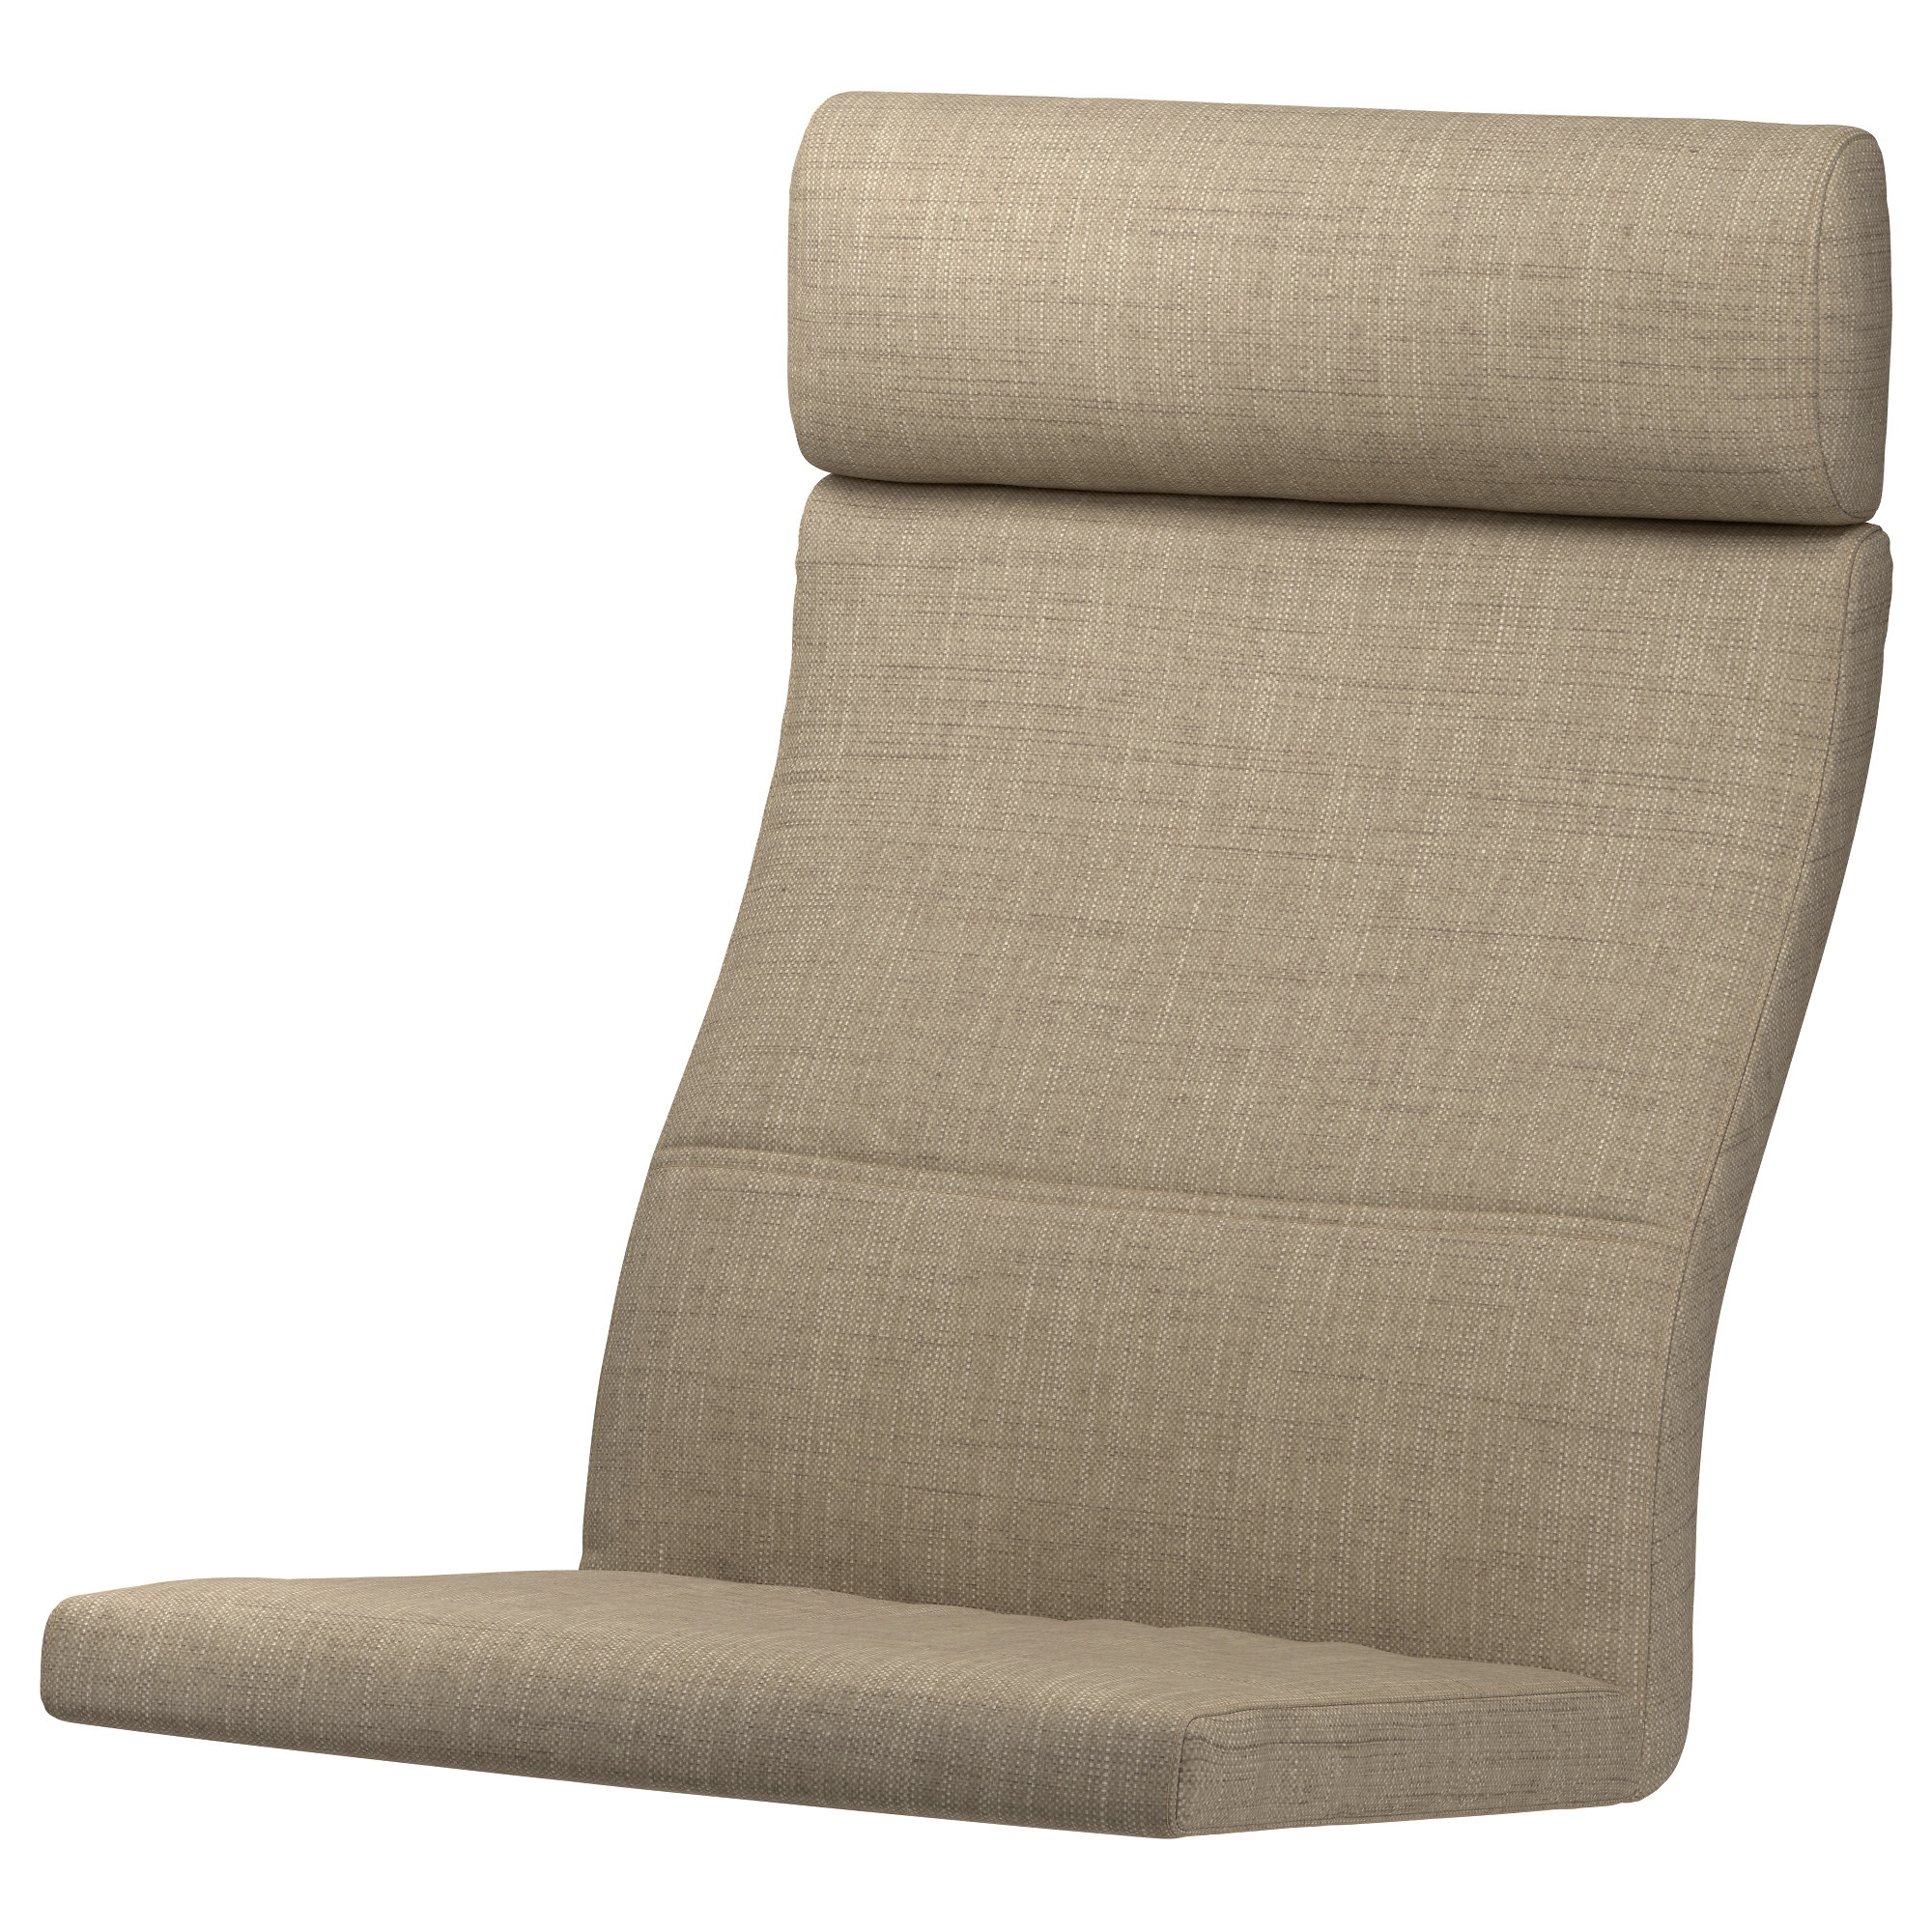 "PO""NG Chair cushion Isunda beige IKEA"